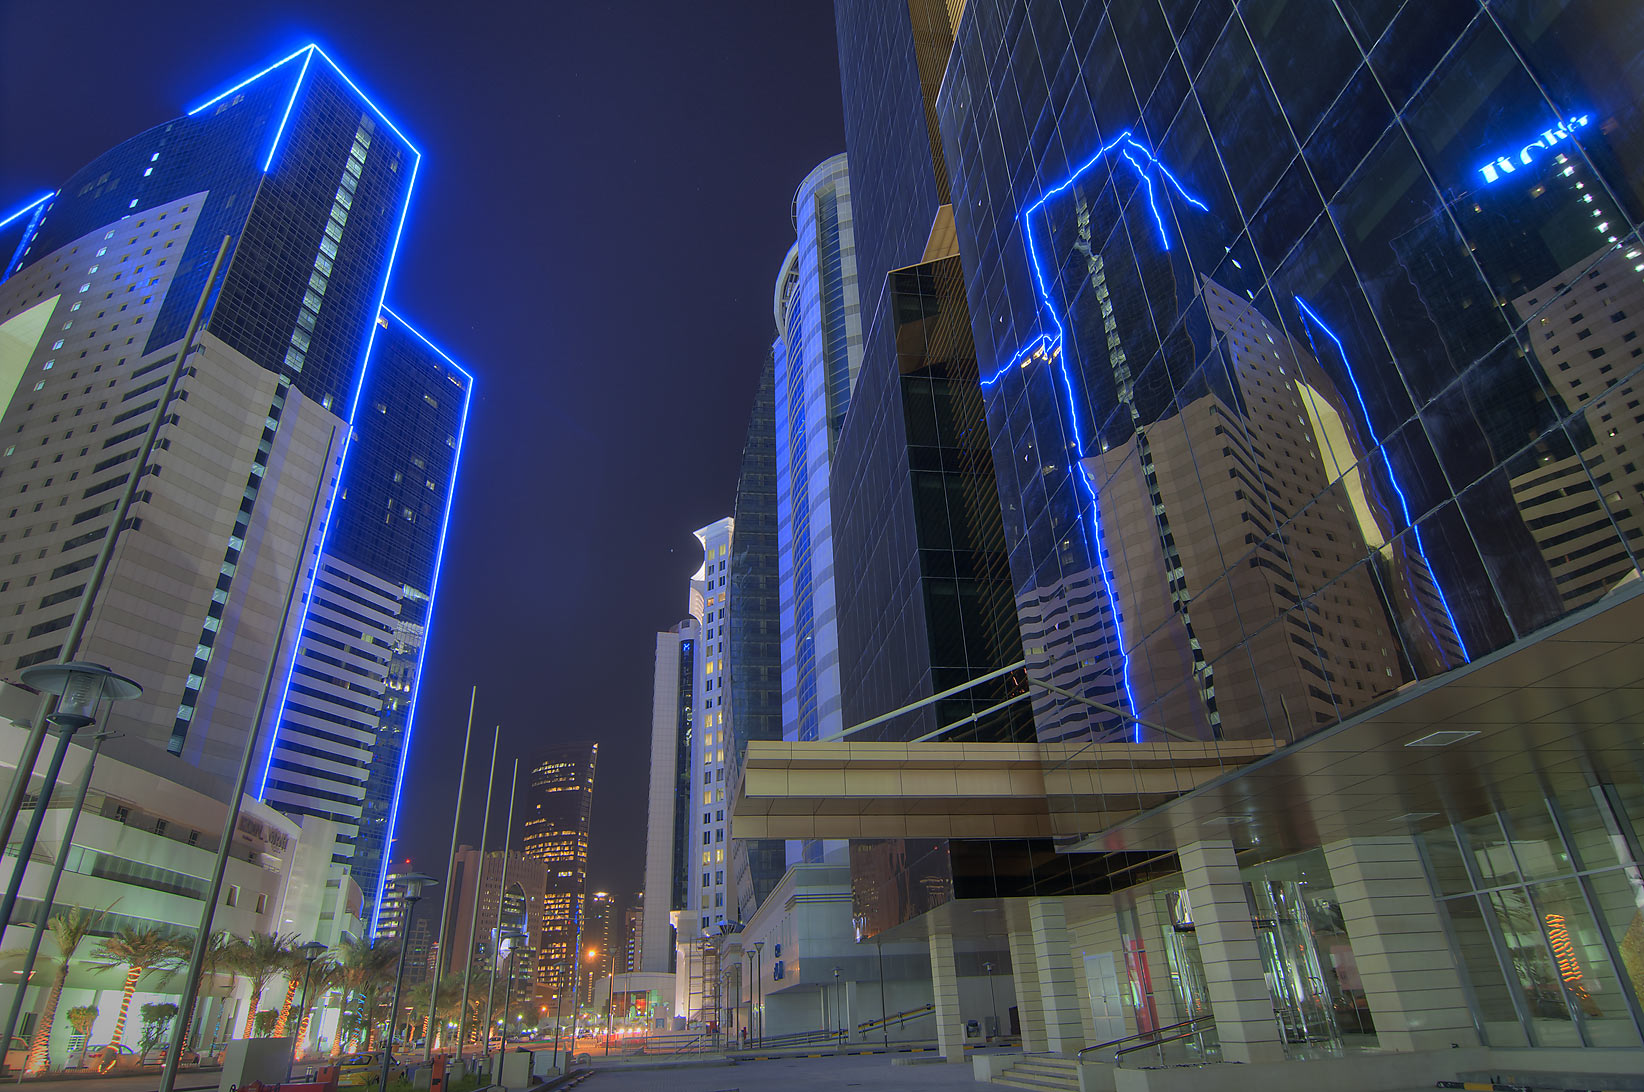 Ezdan Hotel and Golden Bay Tower in West Bay. Doha, Qatar